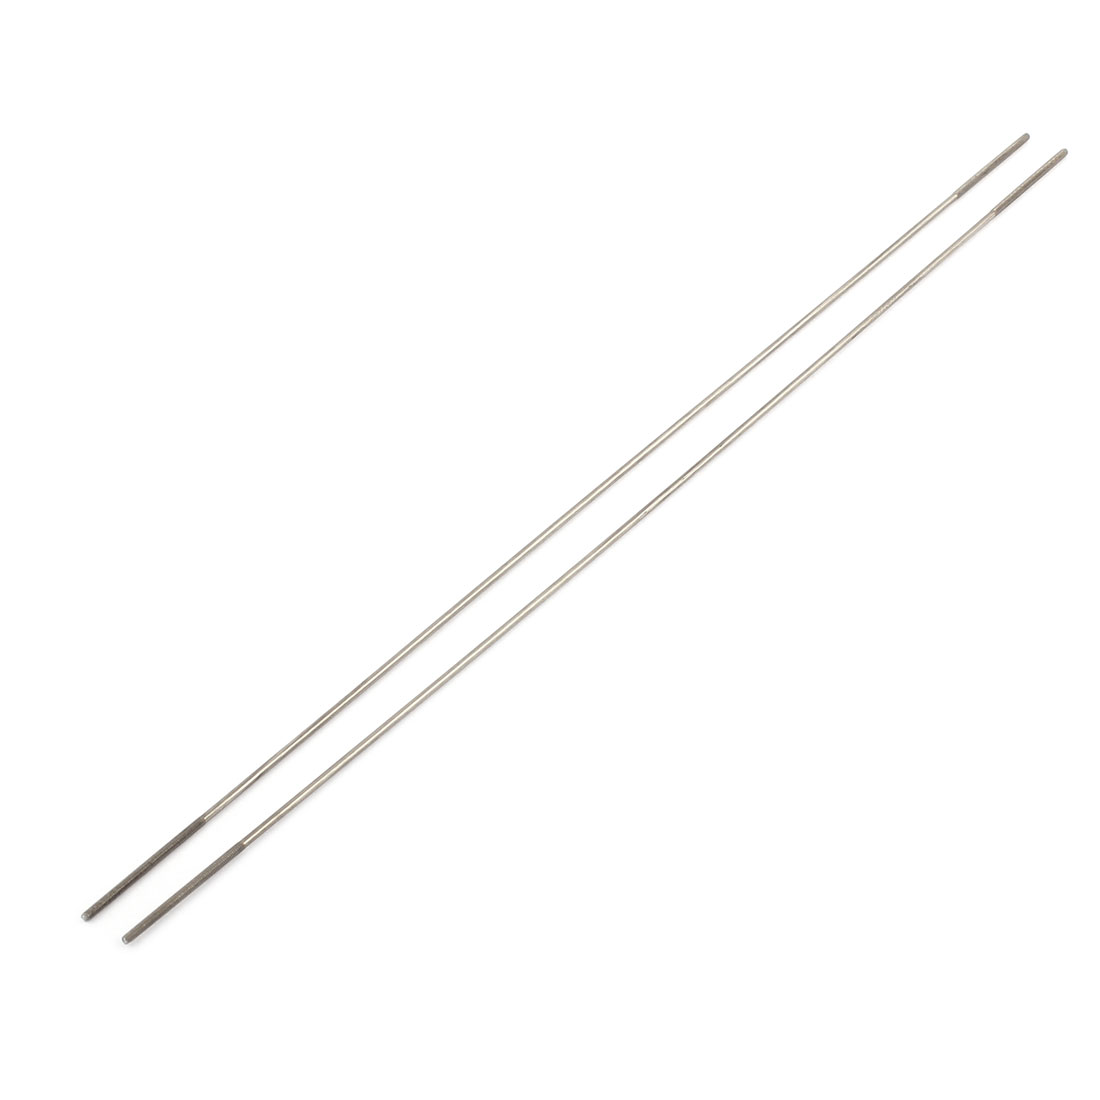 2pcs RC Airplane Parts 2mm Dia Threaded Both End Metal Push Rod 300mm Length